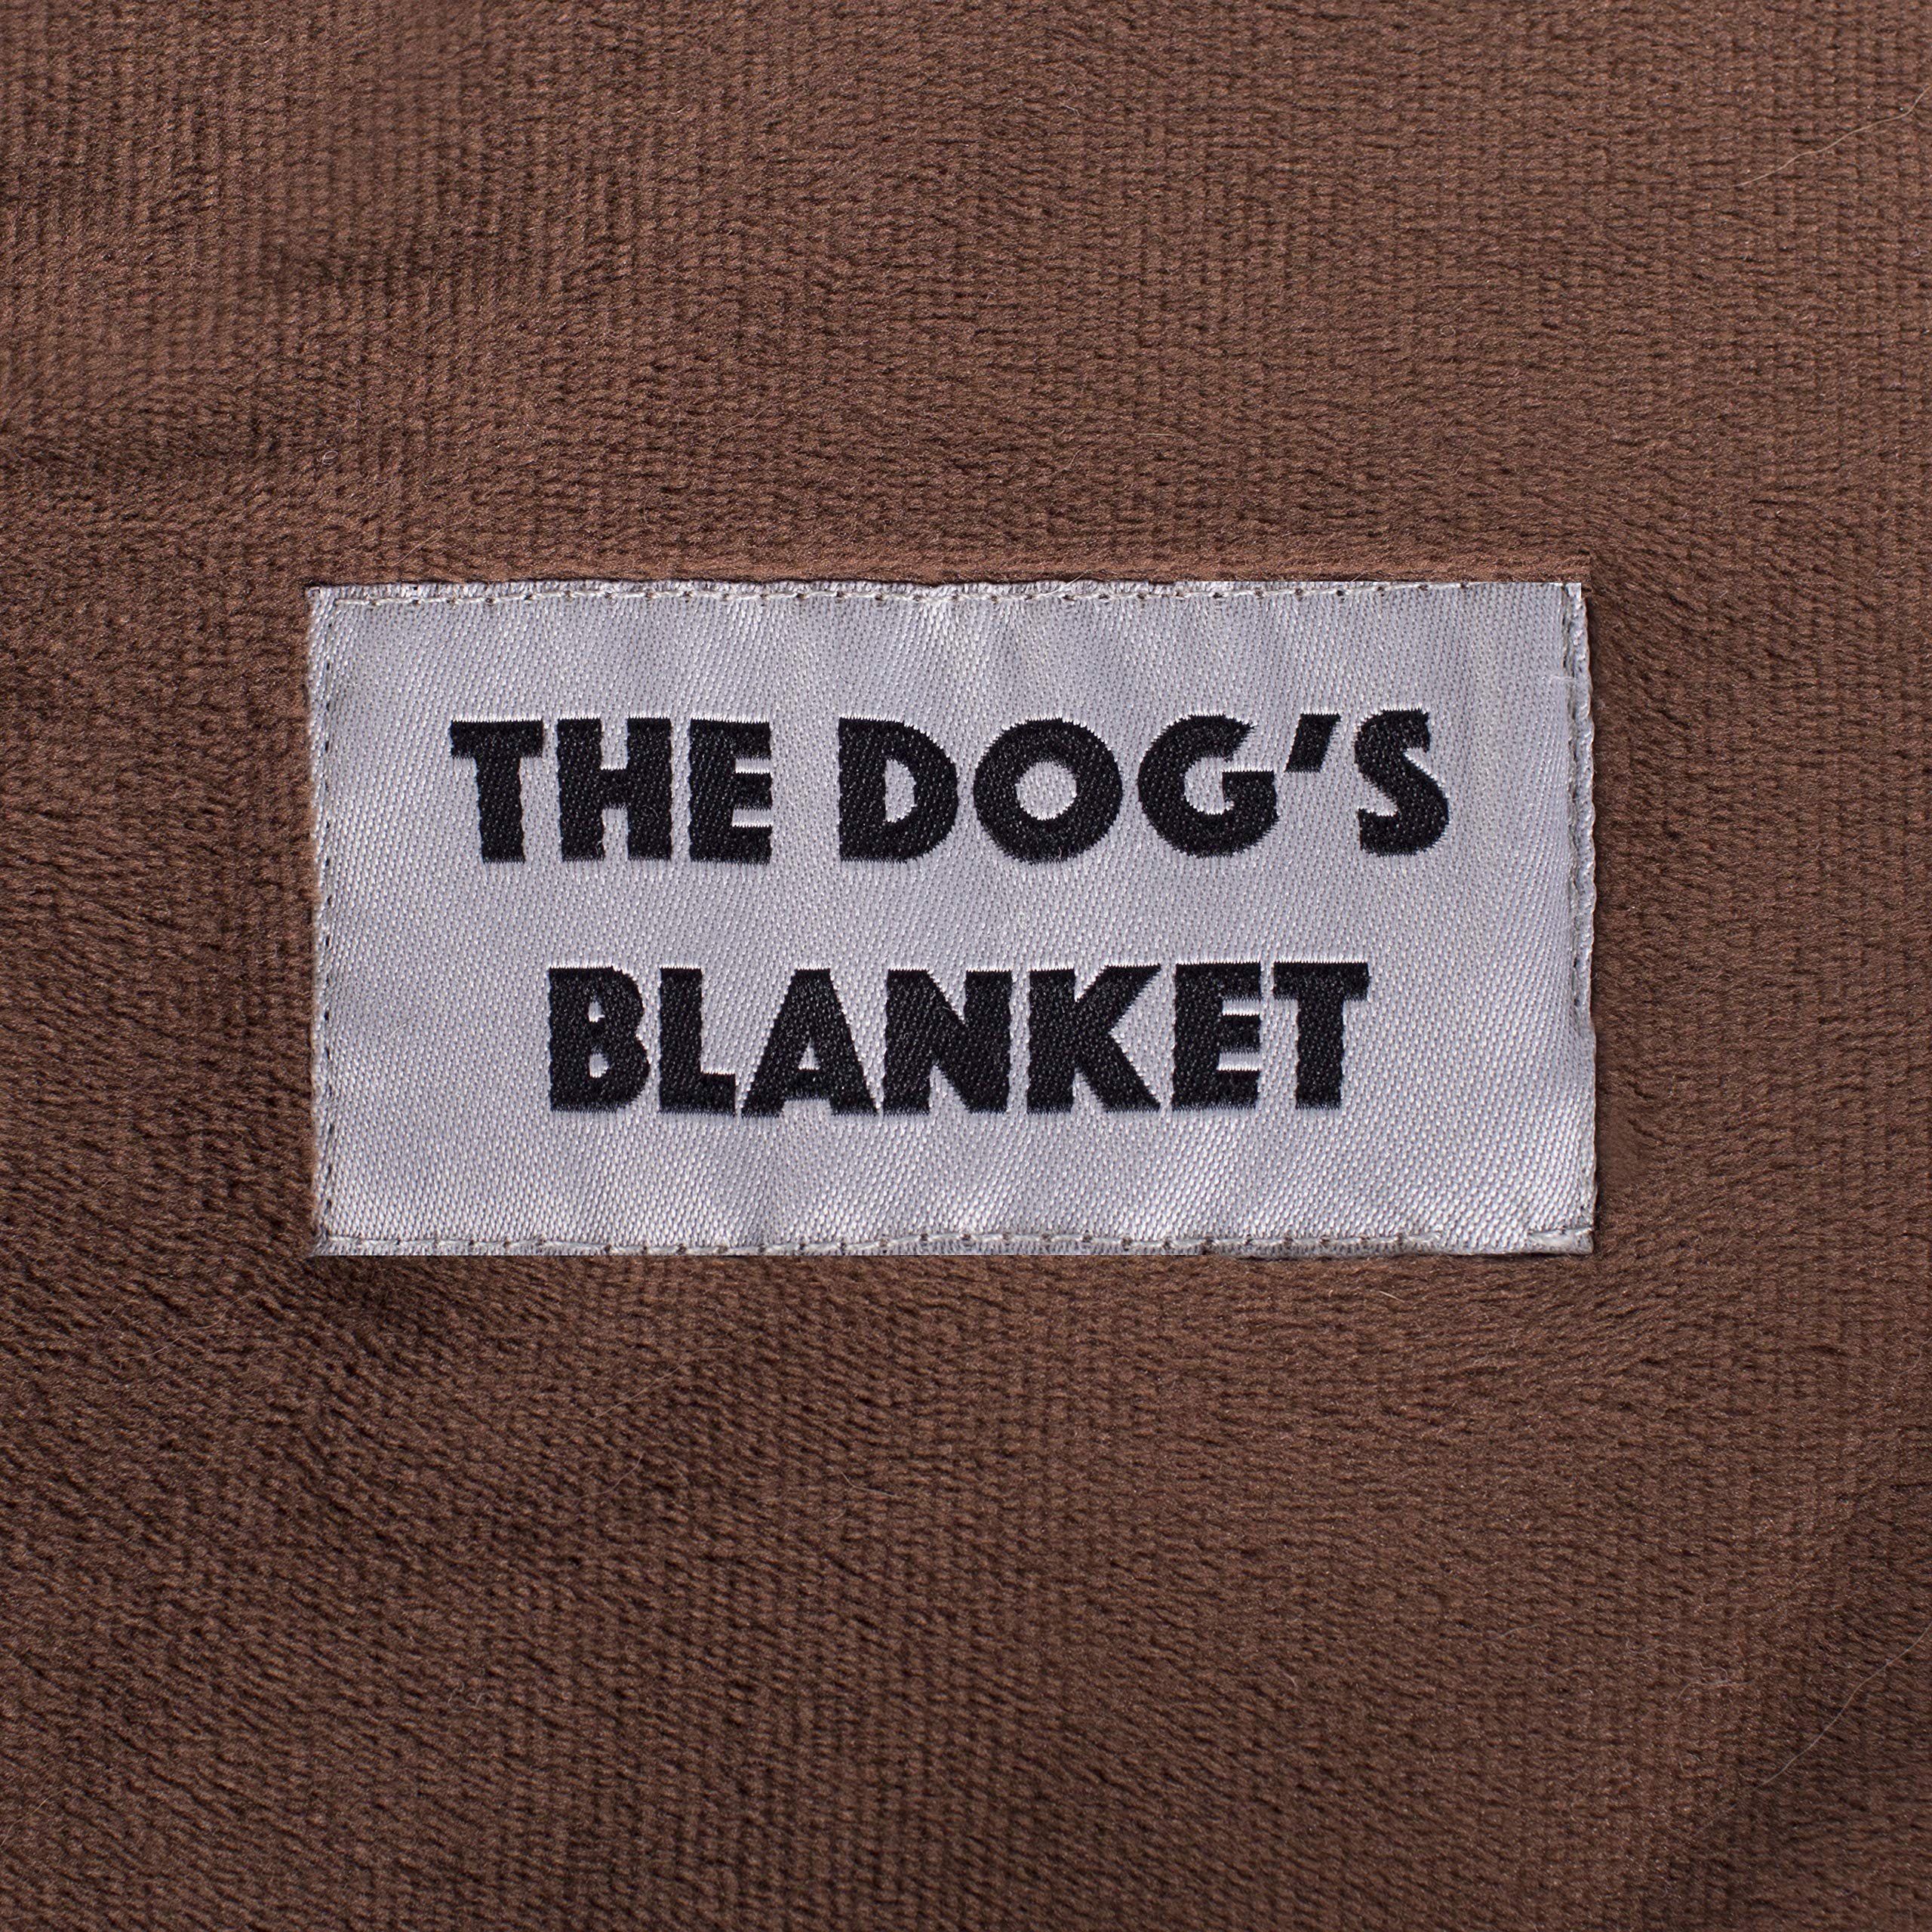 The Dog's Blanket, Premium Quality Dog Blanket in Brown XL 54x38, Reversible, Microfiber Luxury for Your Dog or Puppy to Enjoy